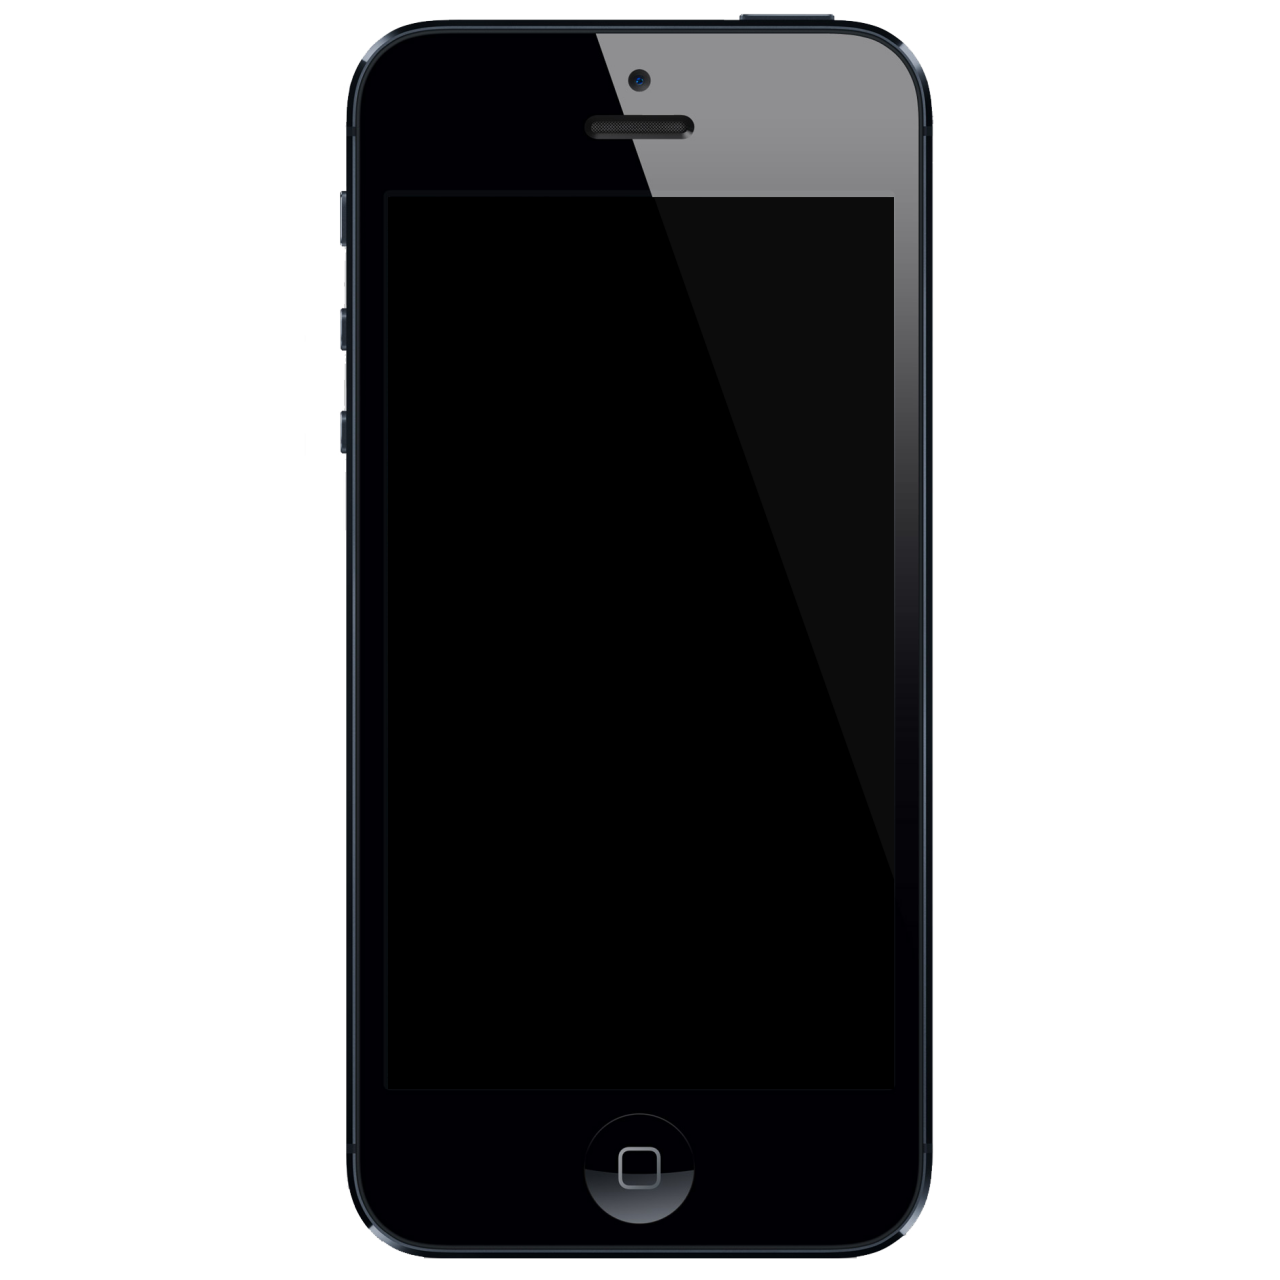 Black Iphone 7 Png image #34206